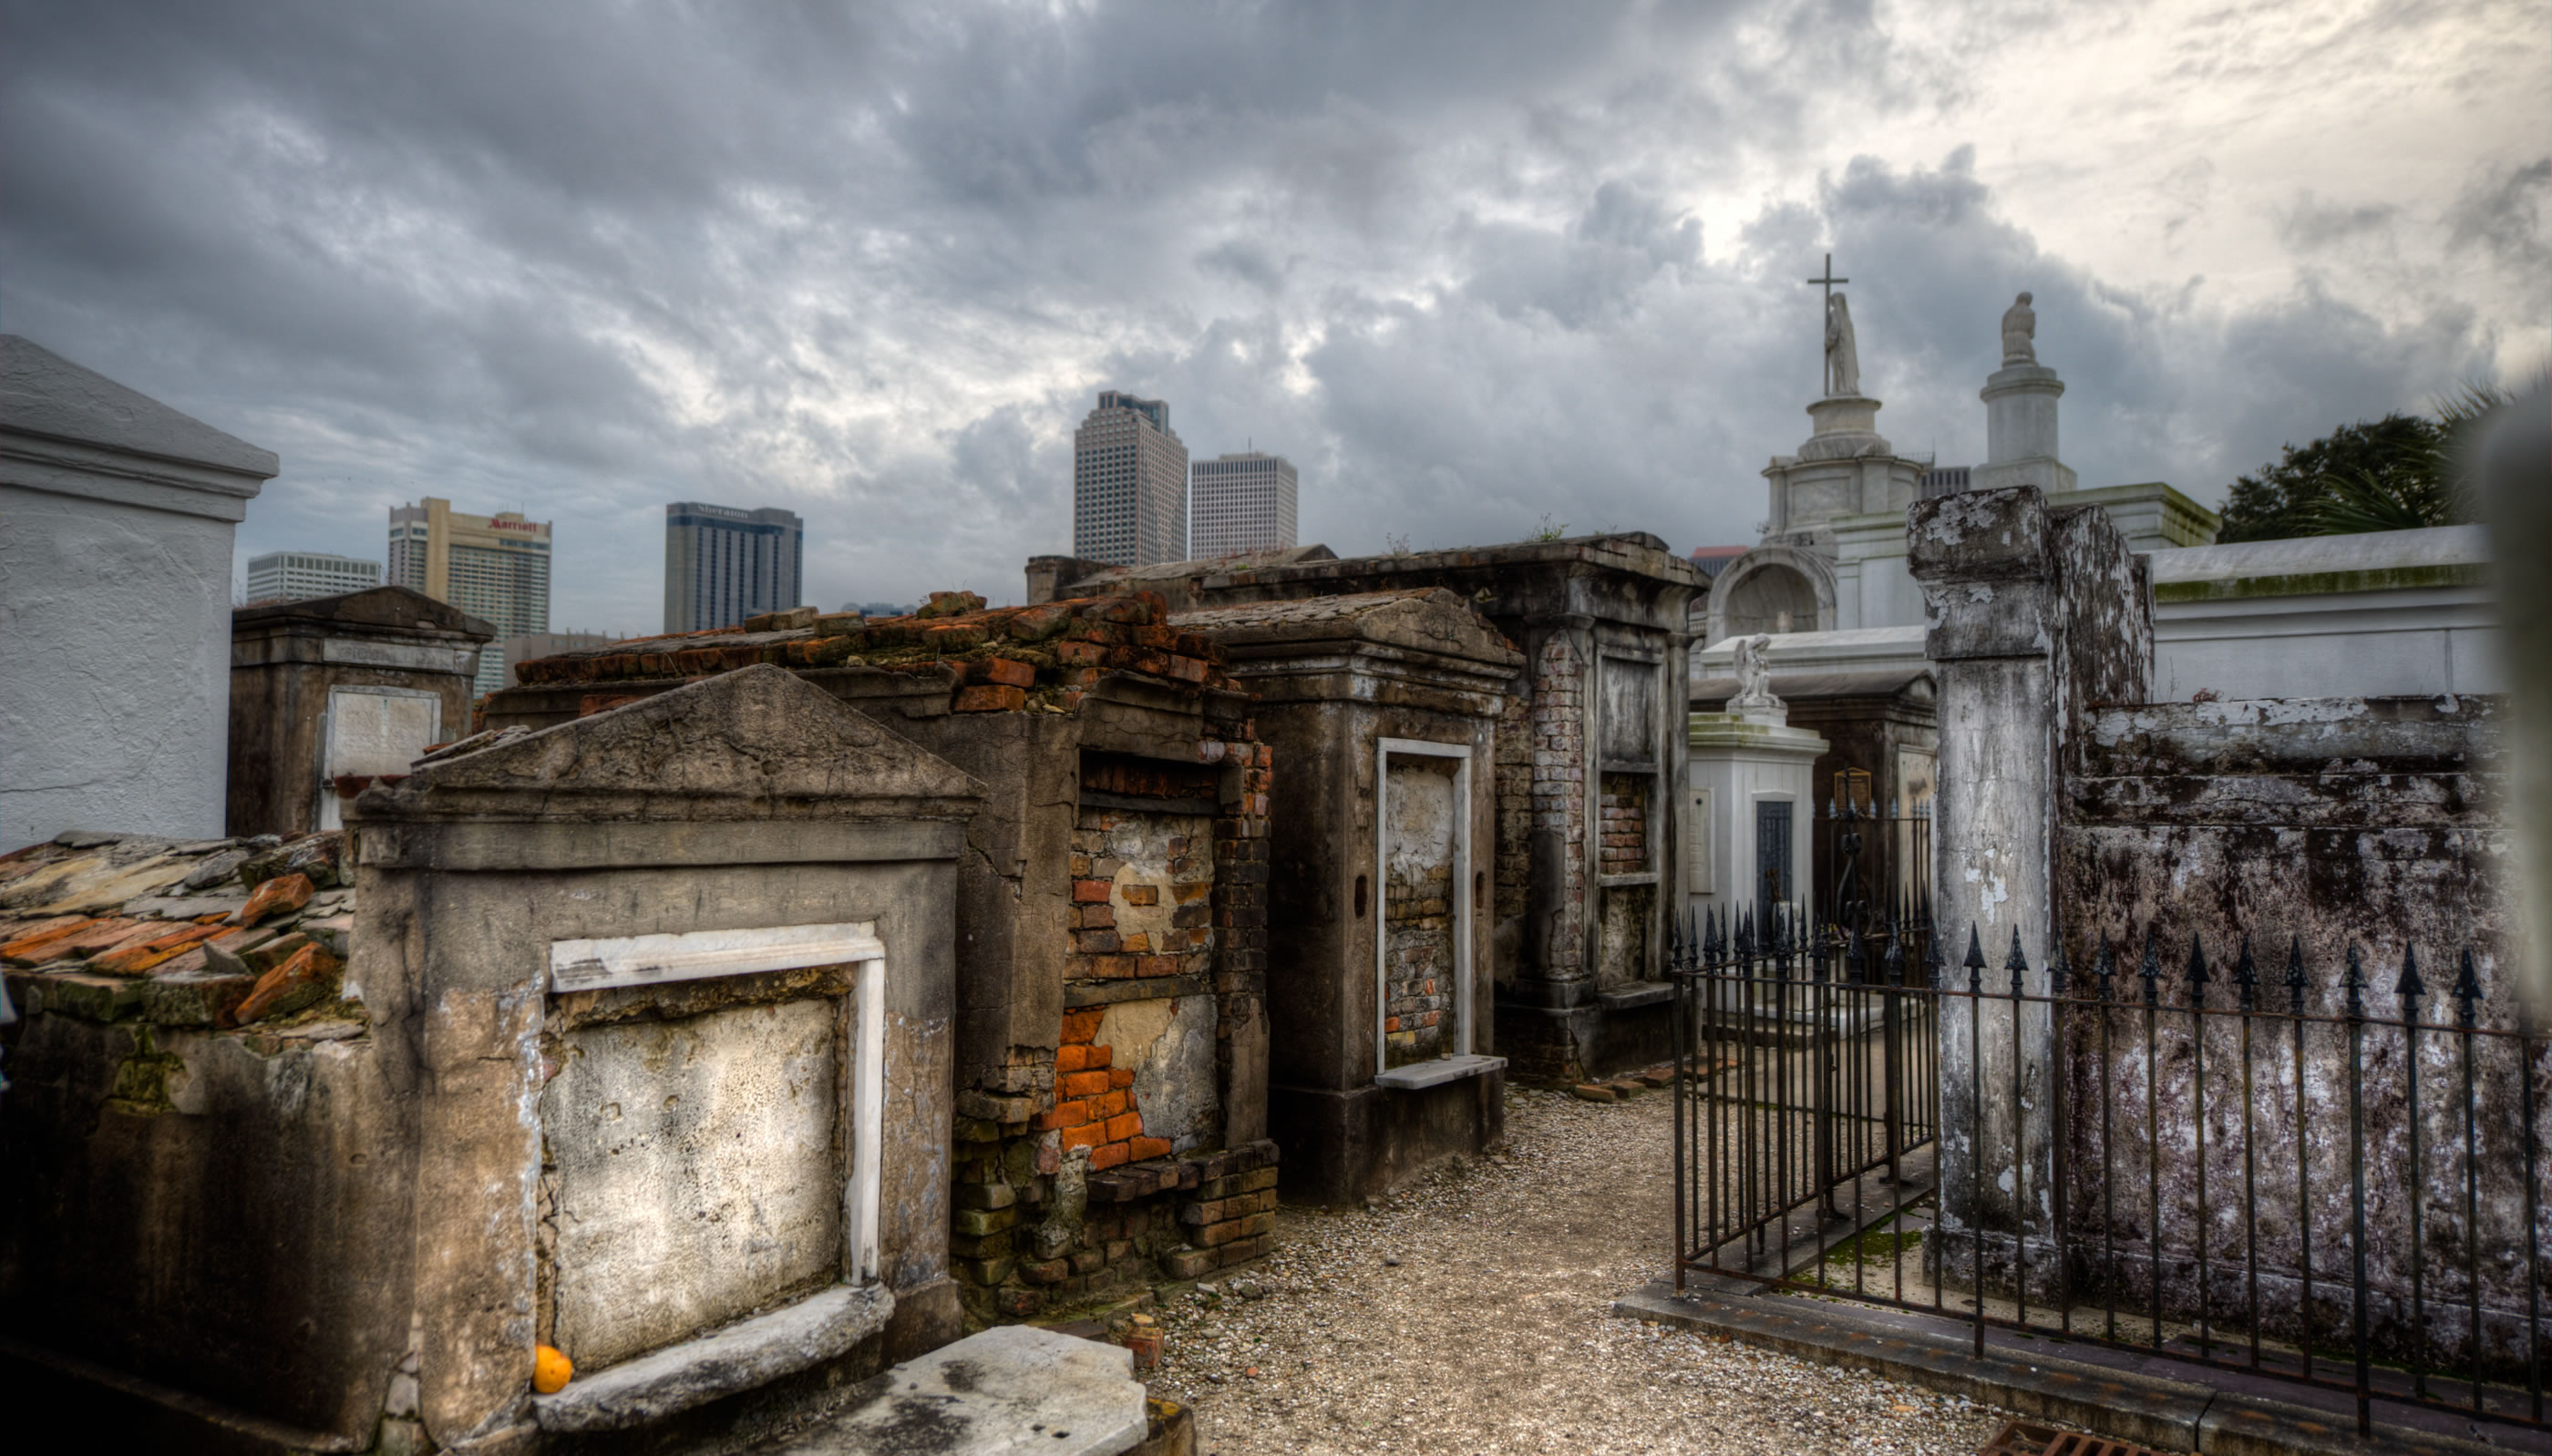 The ghosts of St. Louis Cemetery | Haunted New Orleans Cemetery